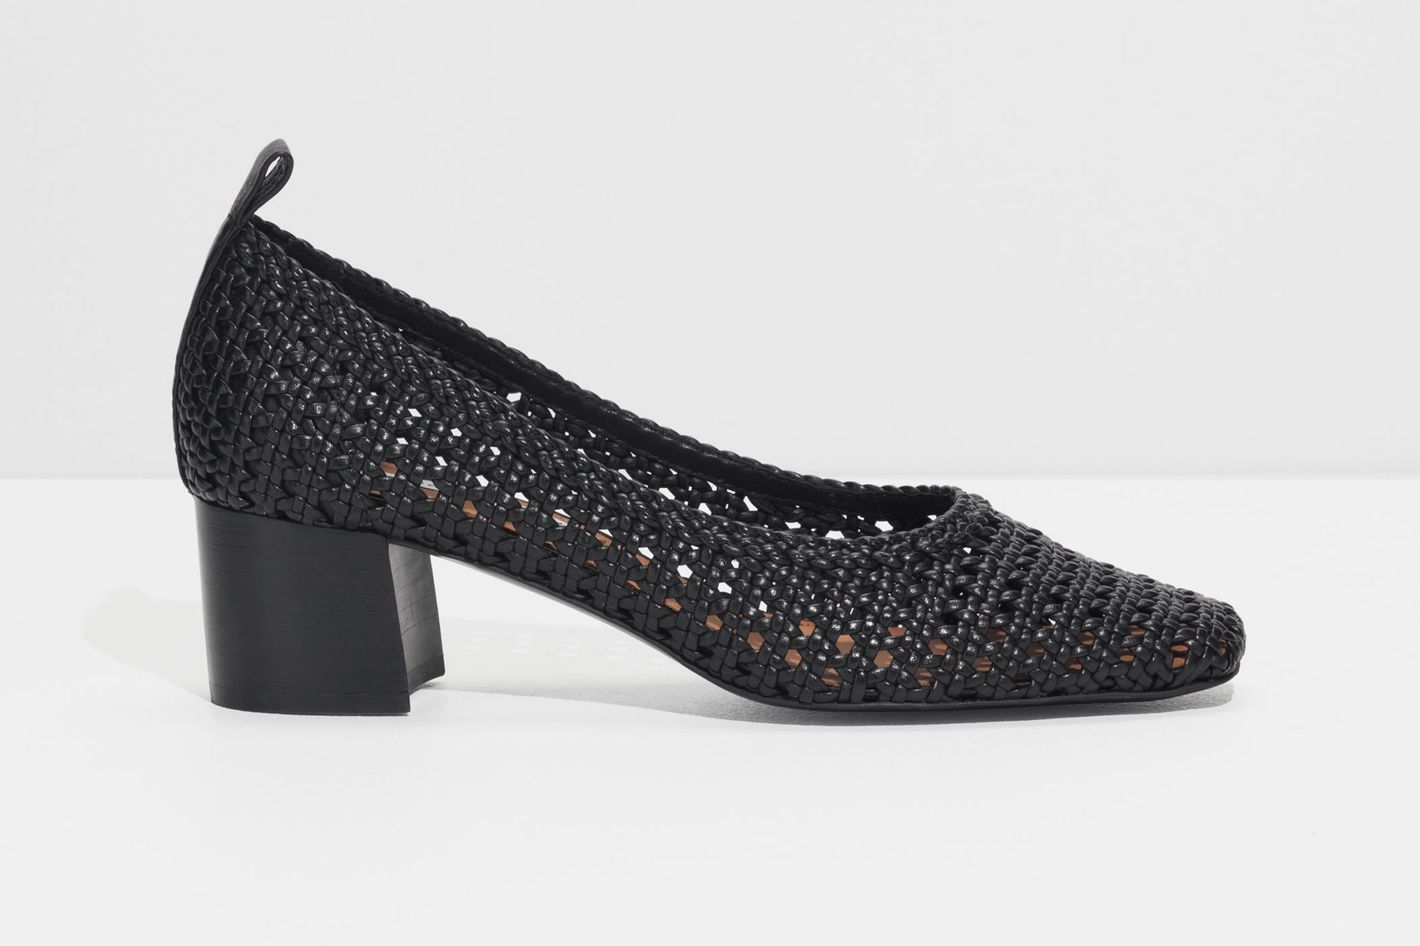 & Other Stories Square Toe Woven Heels